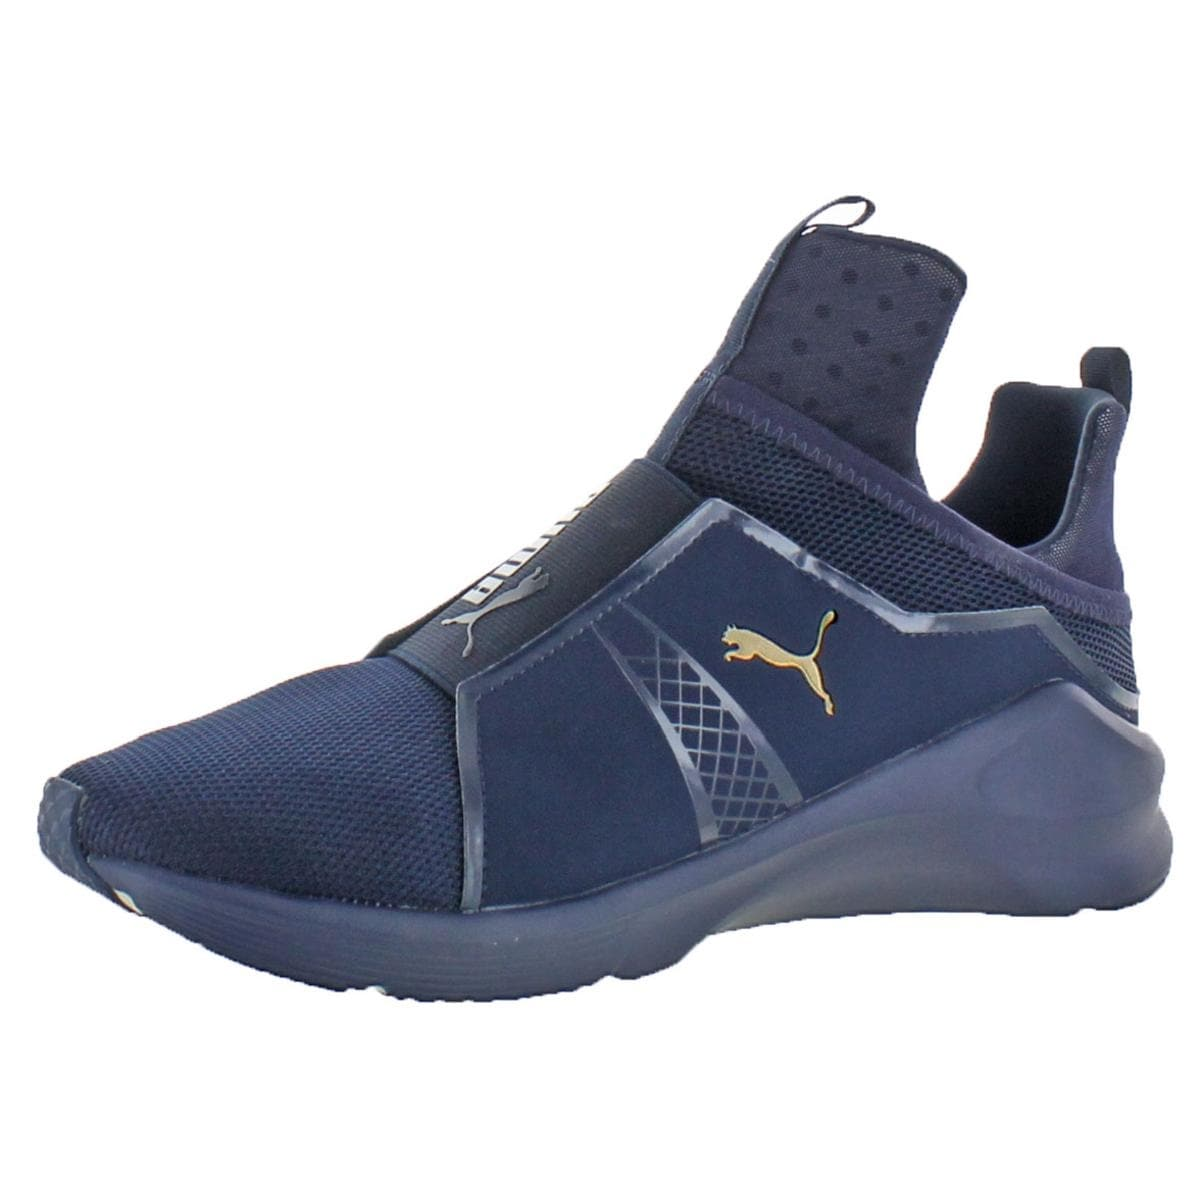 670a8fdcfd48 Shop Puma Mens Fierce Core Mono Trainers Lifestyle Athleisure - Free  Shipping Today - Overstock - 23446784